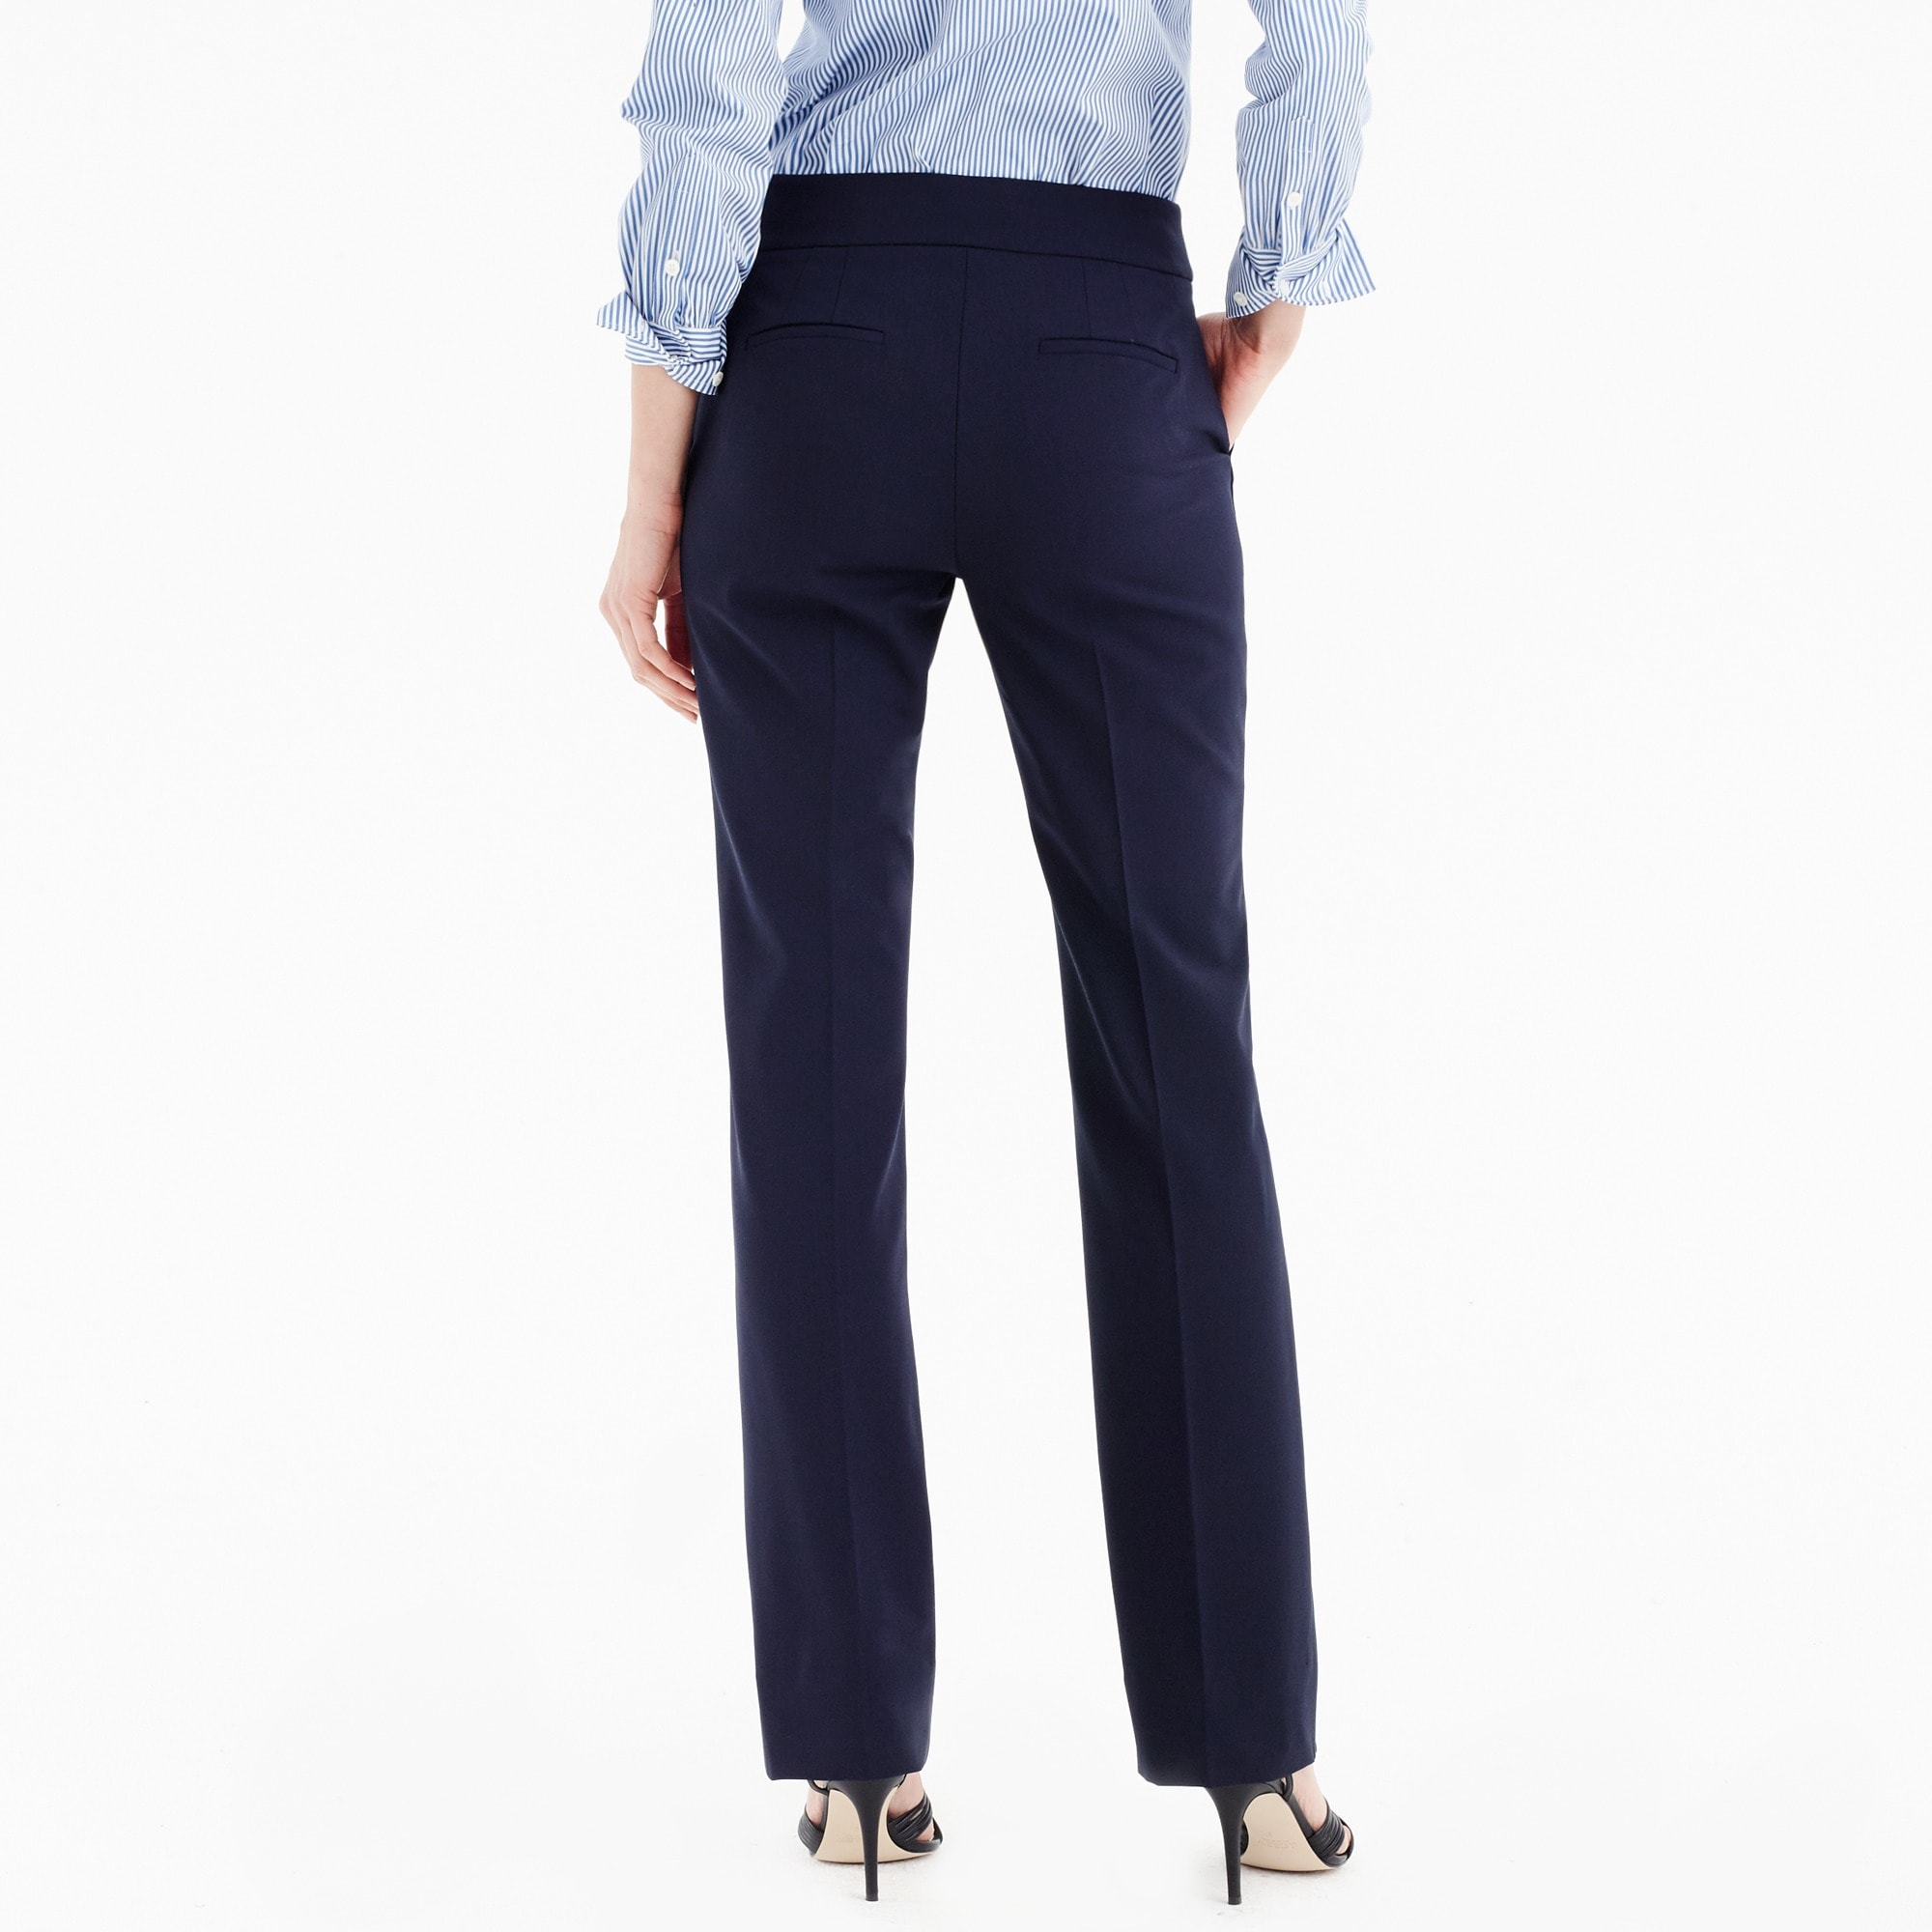 Image 2 for Edie full-length lined trouser in Italian two-way stretch wool